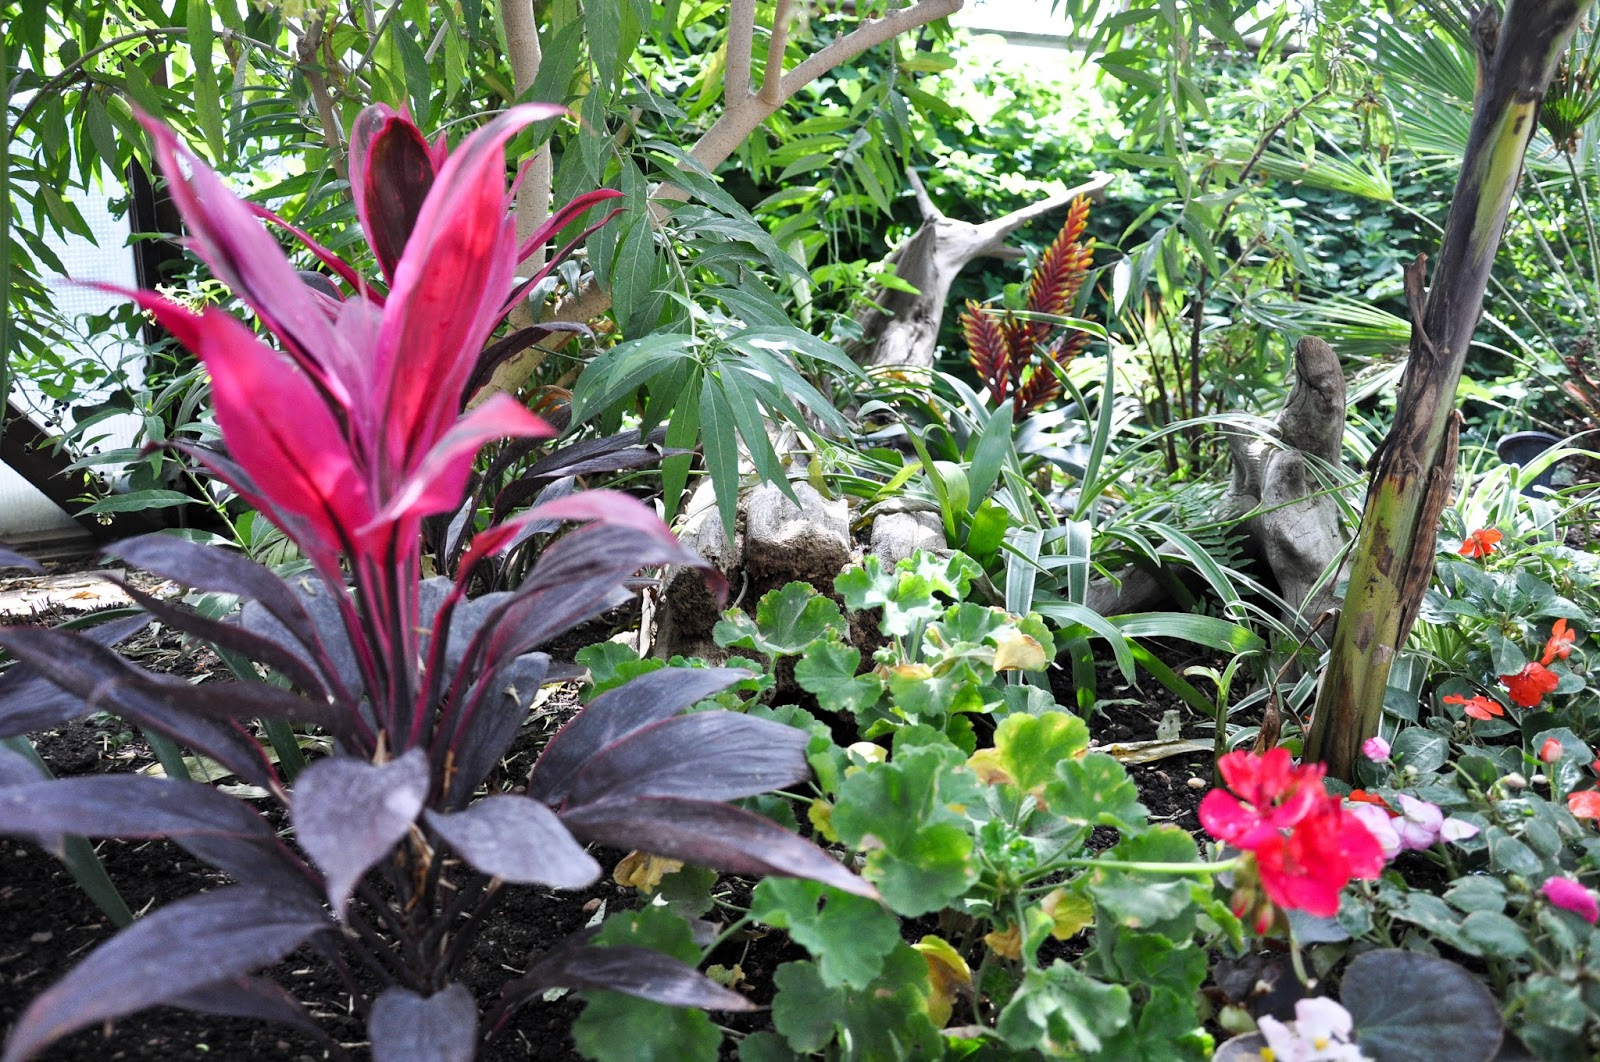 Inside the Tropical Butterfly House, The Butterfly World Project, St. Albans, Herts, UK